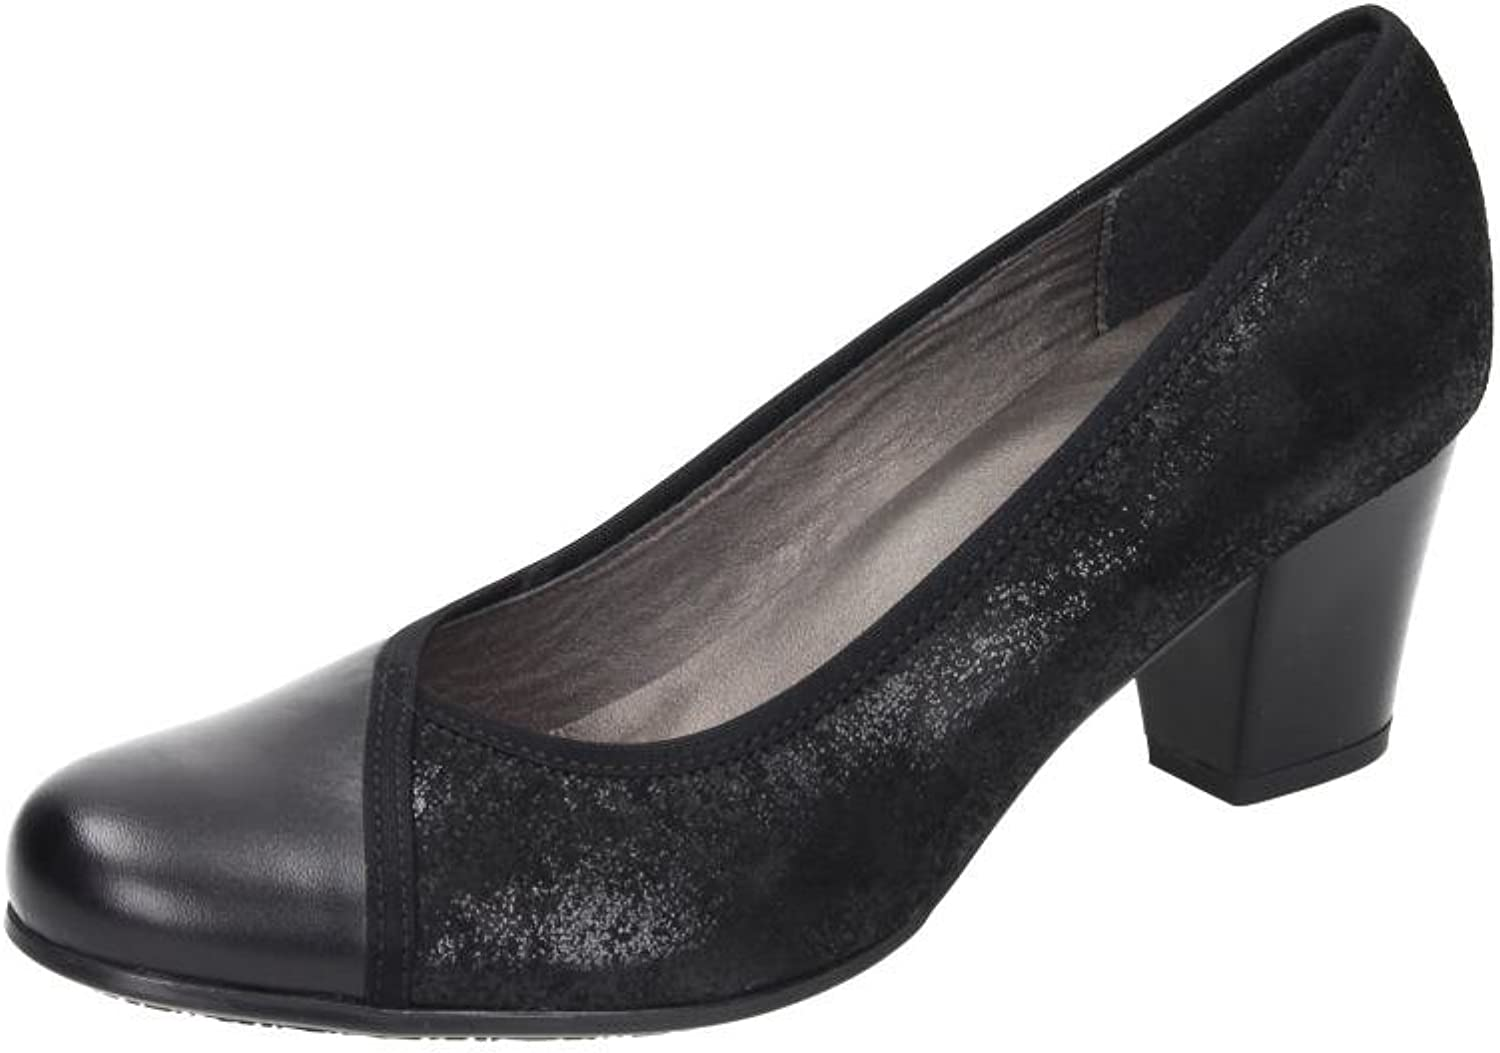 Comfortabel Damen Ballerinas black, 730378-1